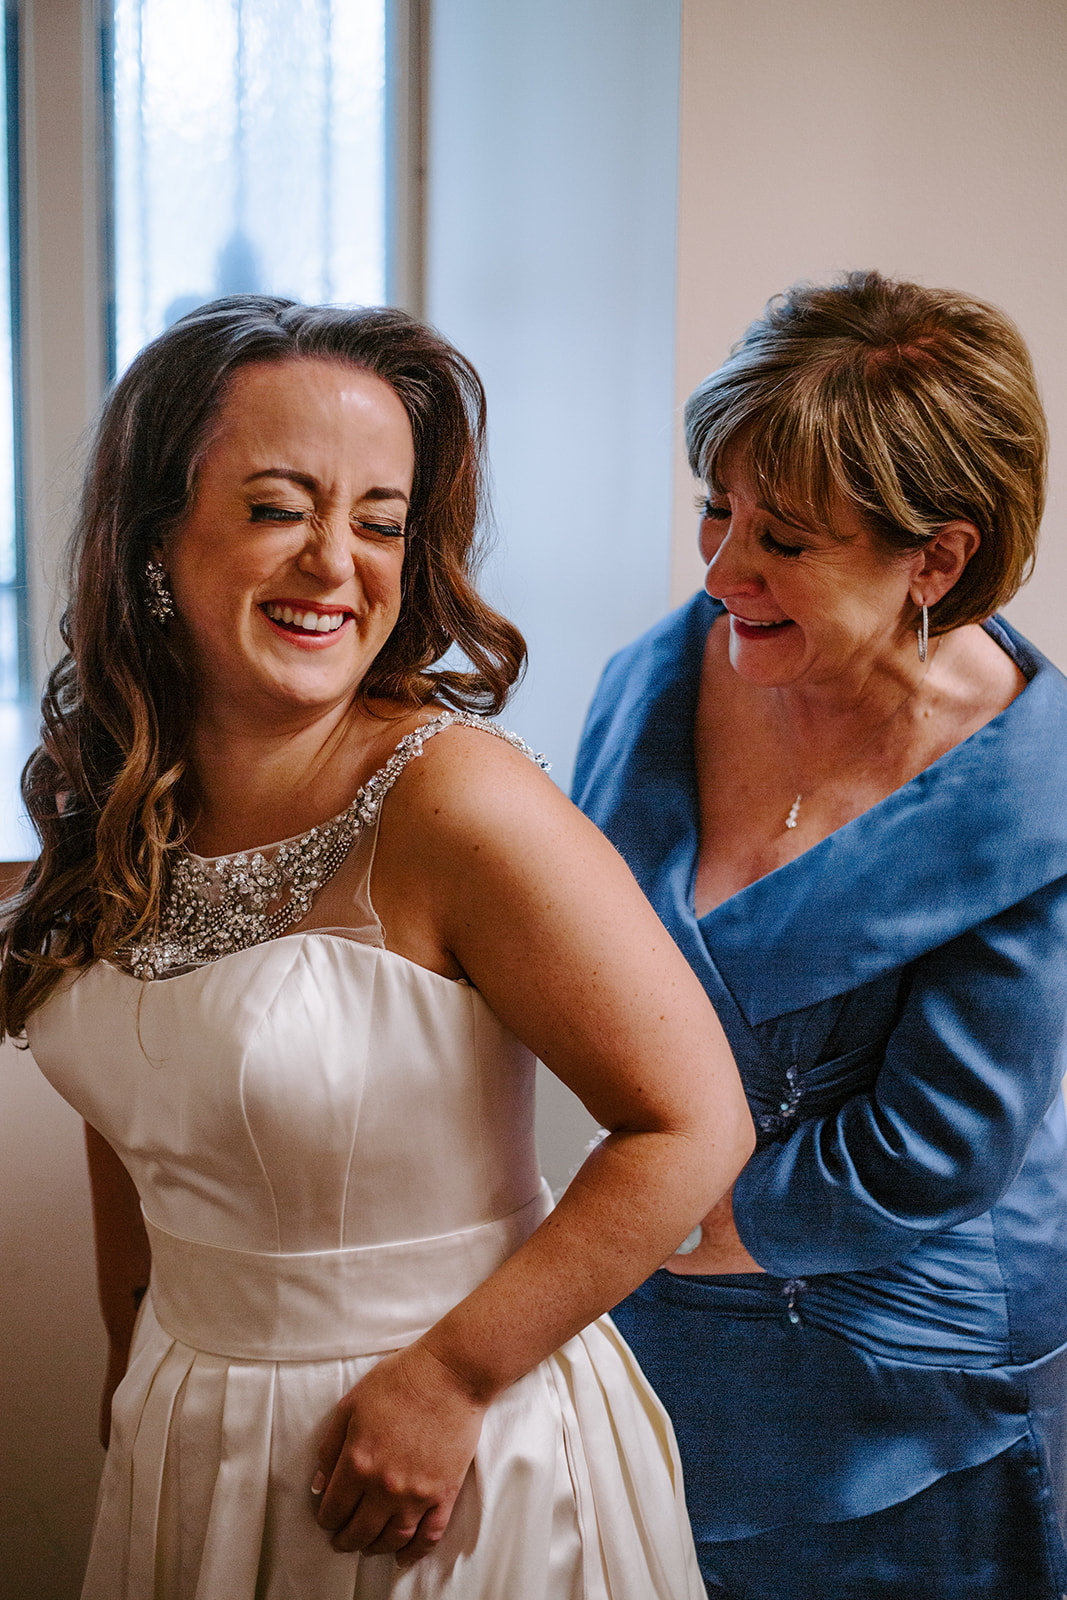 Mom helping her daughter put on her wedding dress during her Minneapolis Wedding day